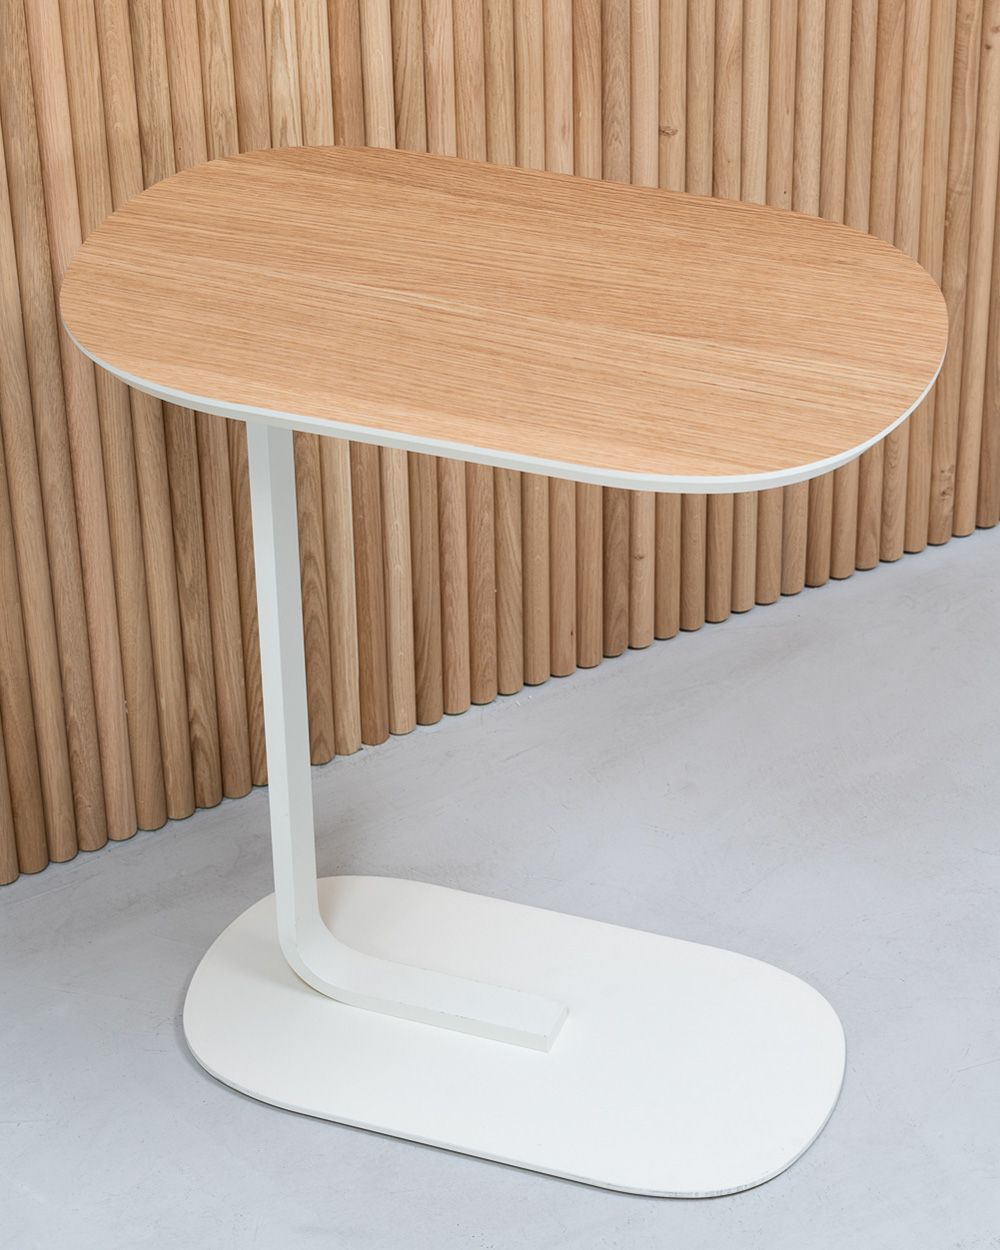 Related side table